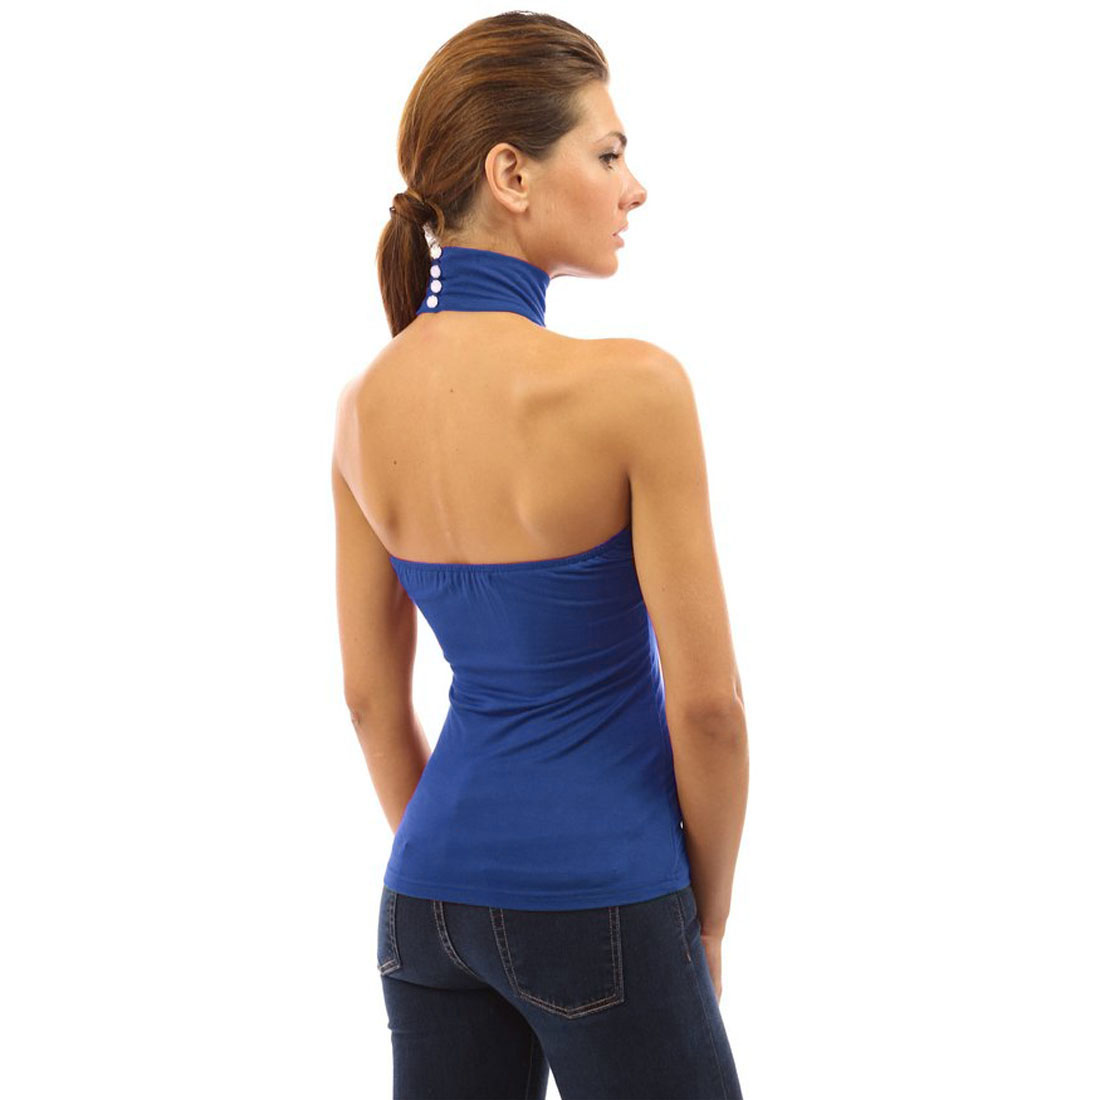 Women Sleeveless Mock-Turtleneck Pleated Top with Waistband. from $ 16 Lisik. Women High Neck Turtleneck Tank Top Sleeveless Turtleneck Lace Shirt. from $ 18 99 Prime. out of 5 stars 5. Anne Klein. Women's Sleeveless Turtleneck Sweater, $ 69 00 Prime. out of 5 stars 5. Babe Society.